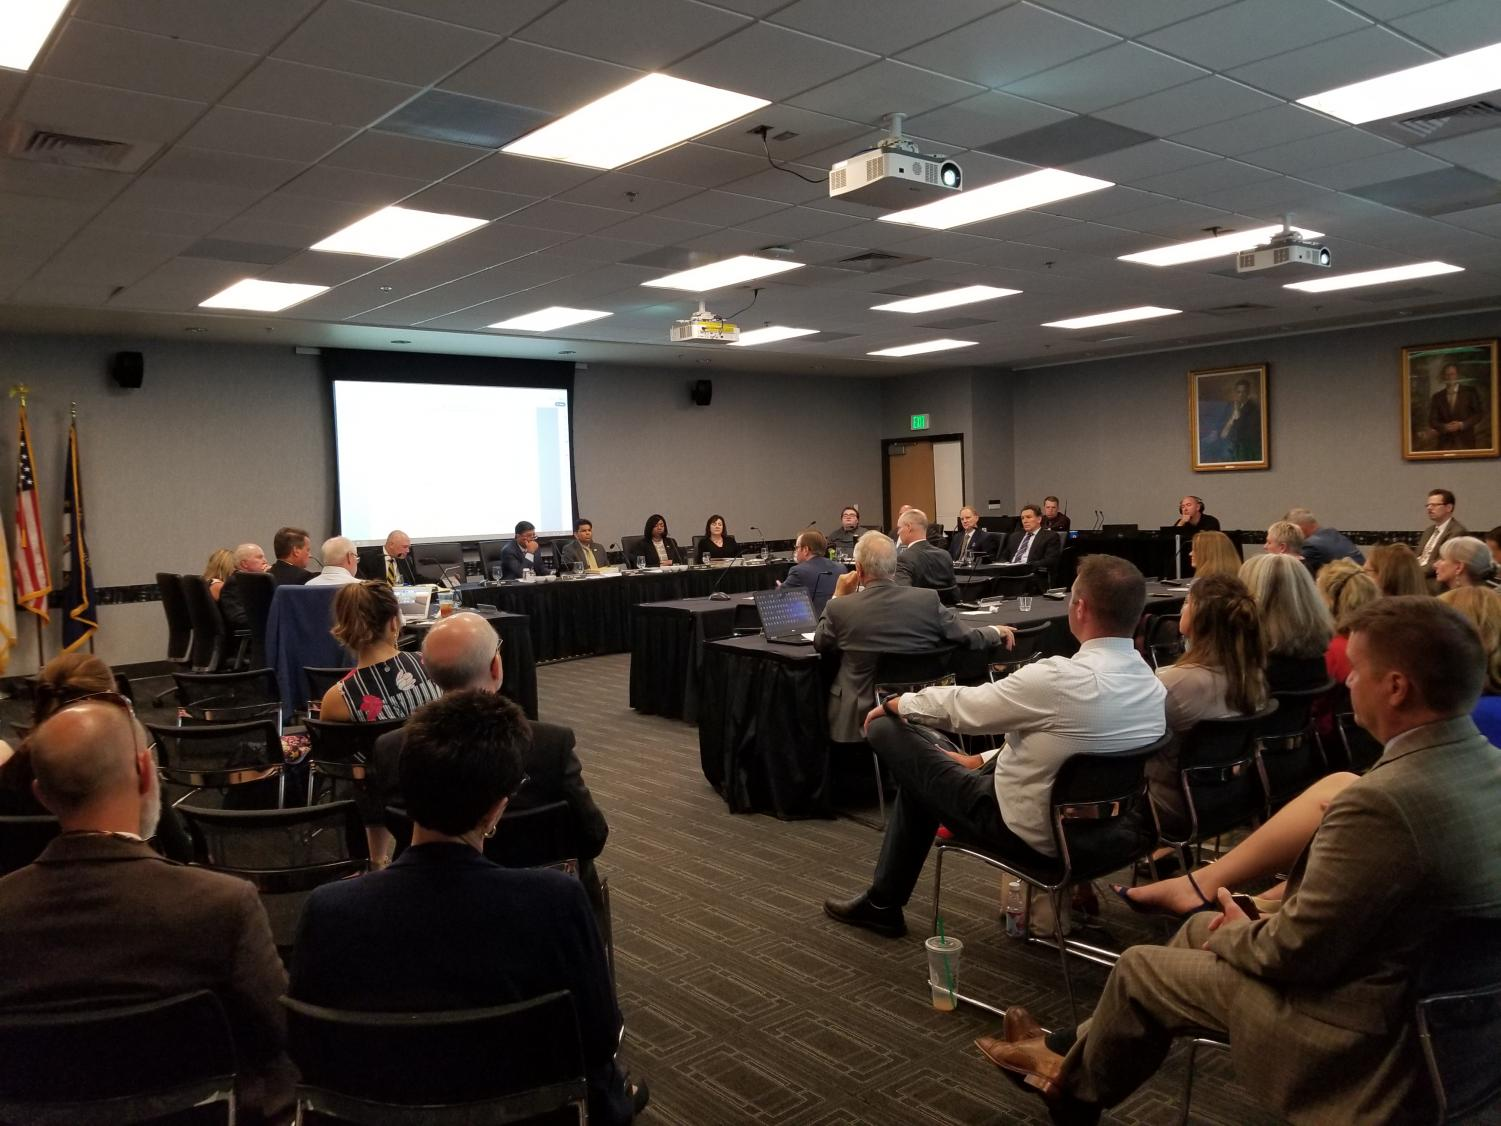 The Board of Regents had their first meeting on September 11th.